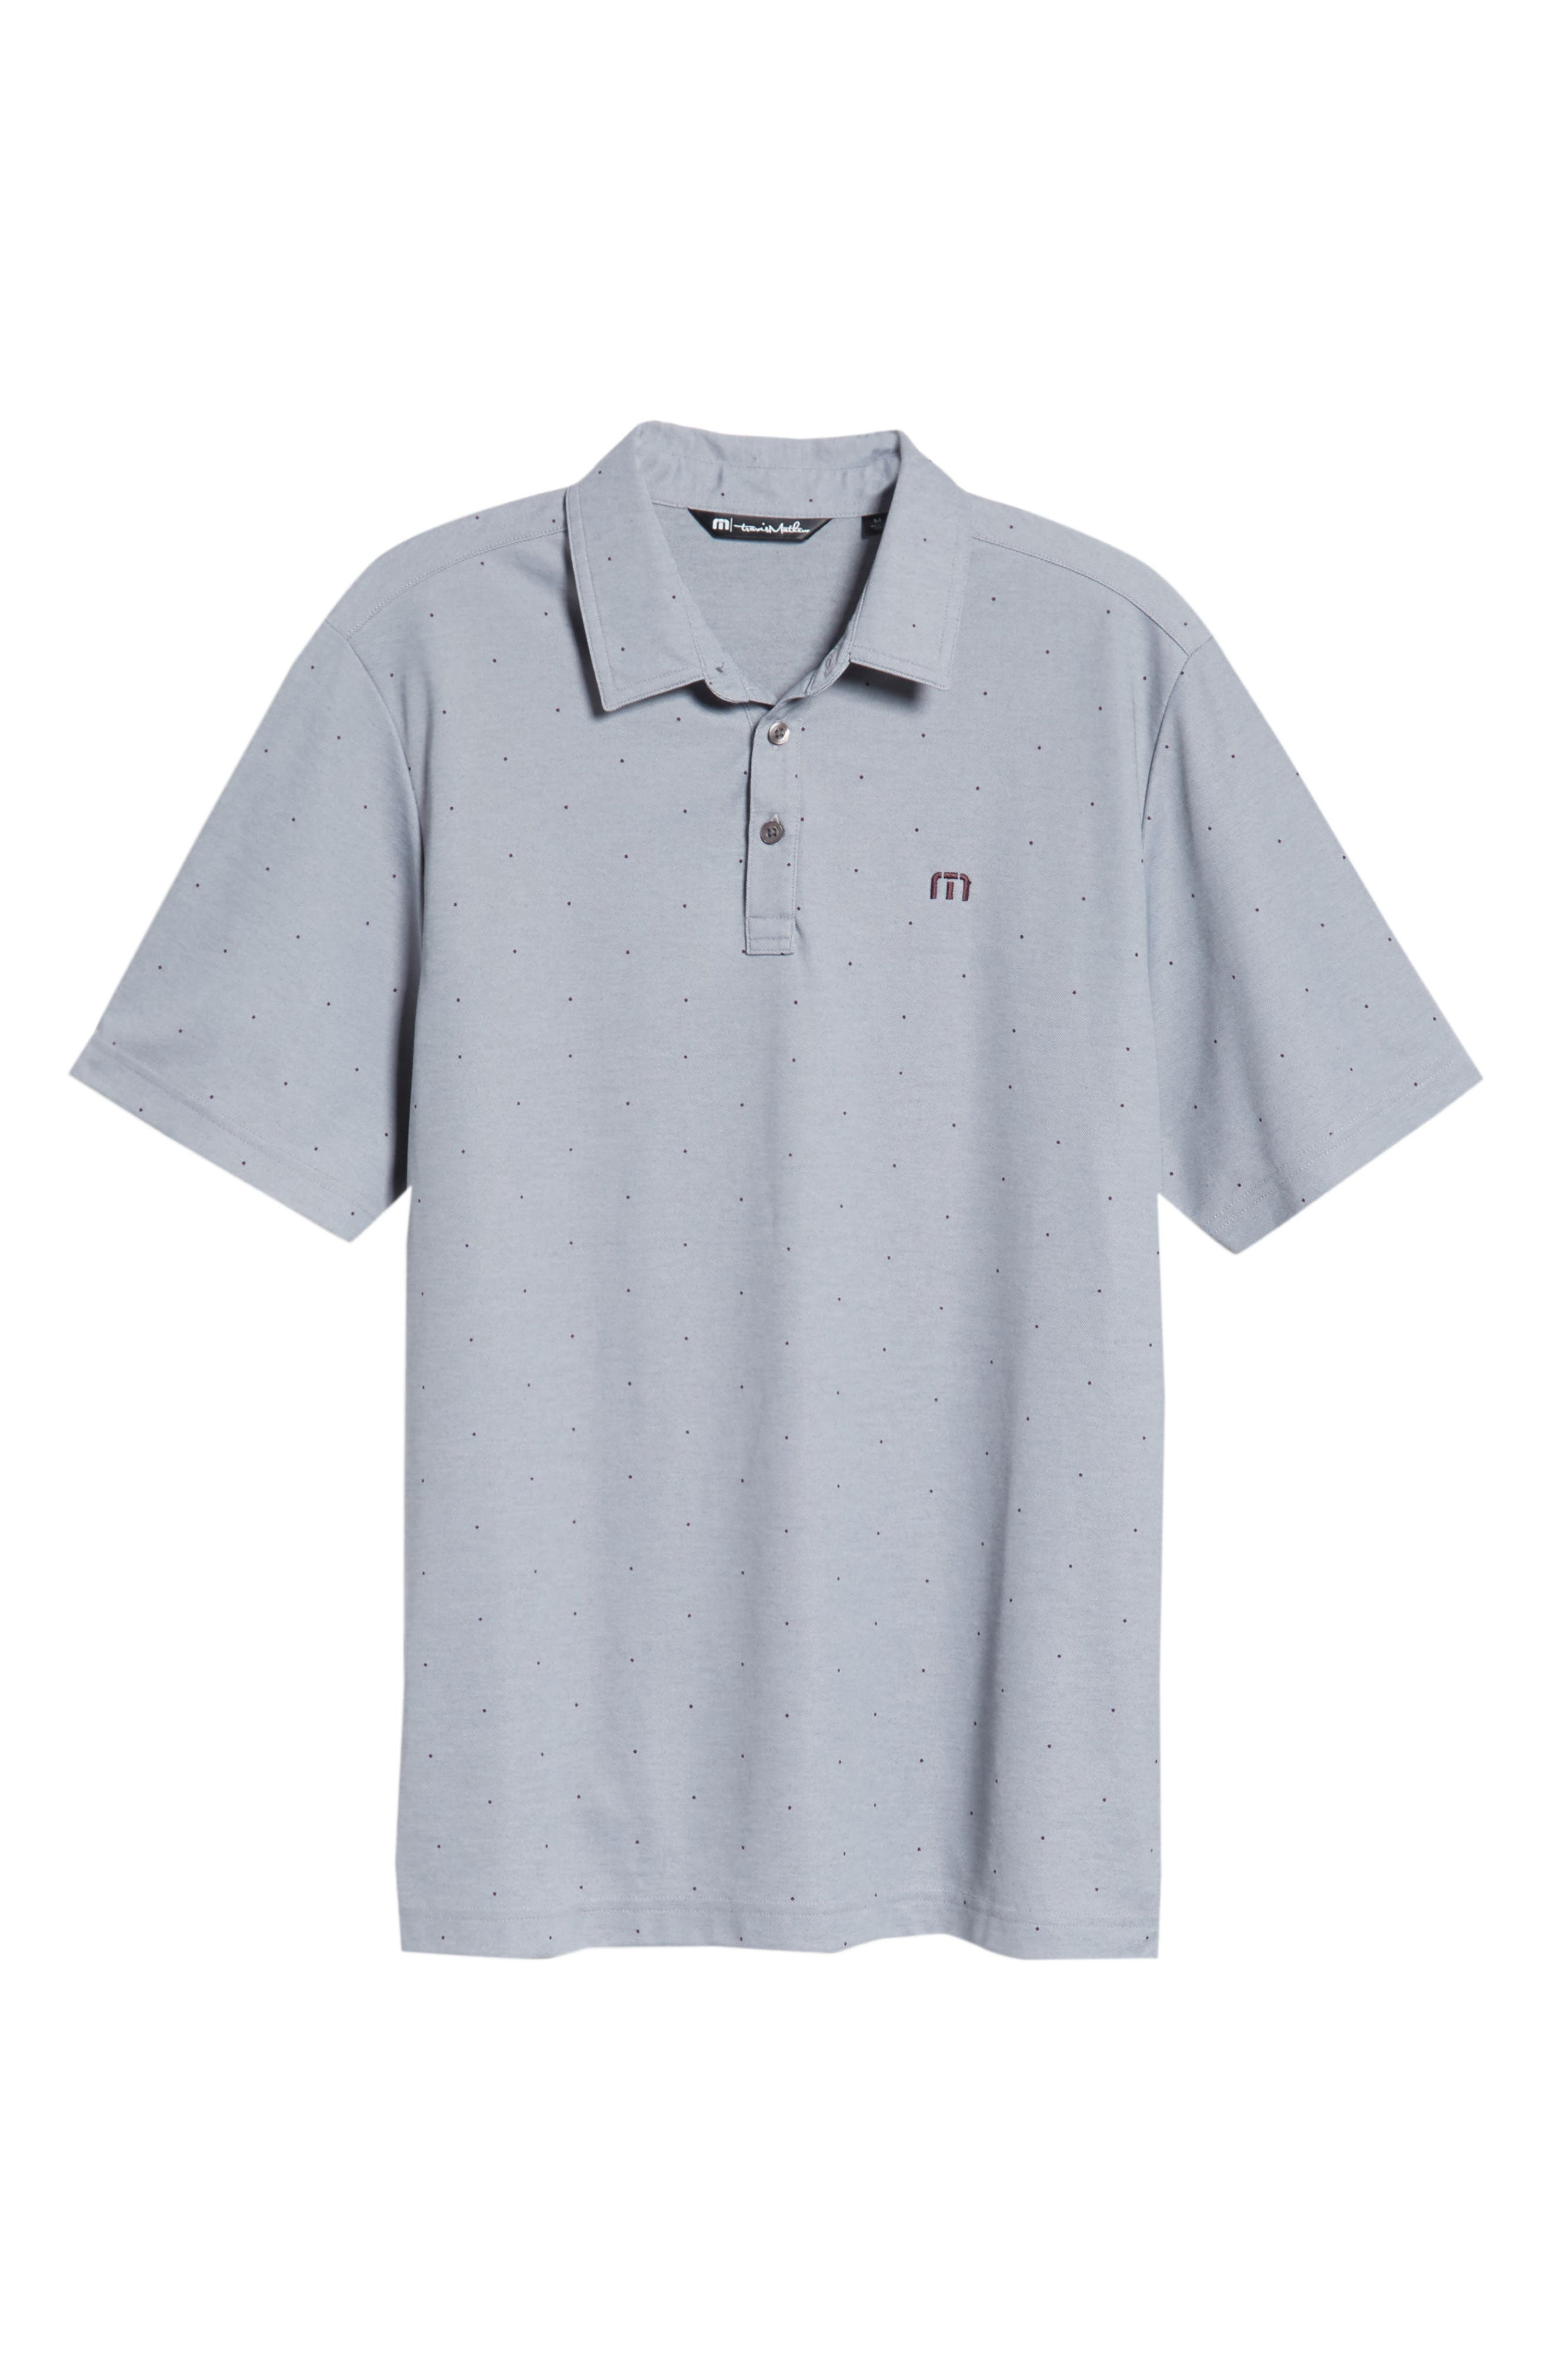 'JJ's Legacy' Trim Fit Polka Dot Polo,                             Alternate thumbnail 6, color,                             Heather Quiet Shade